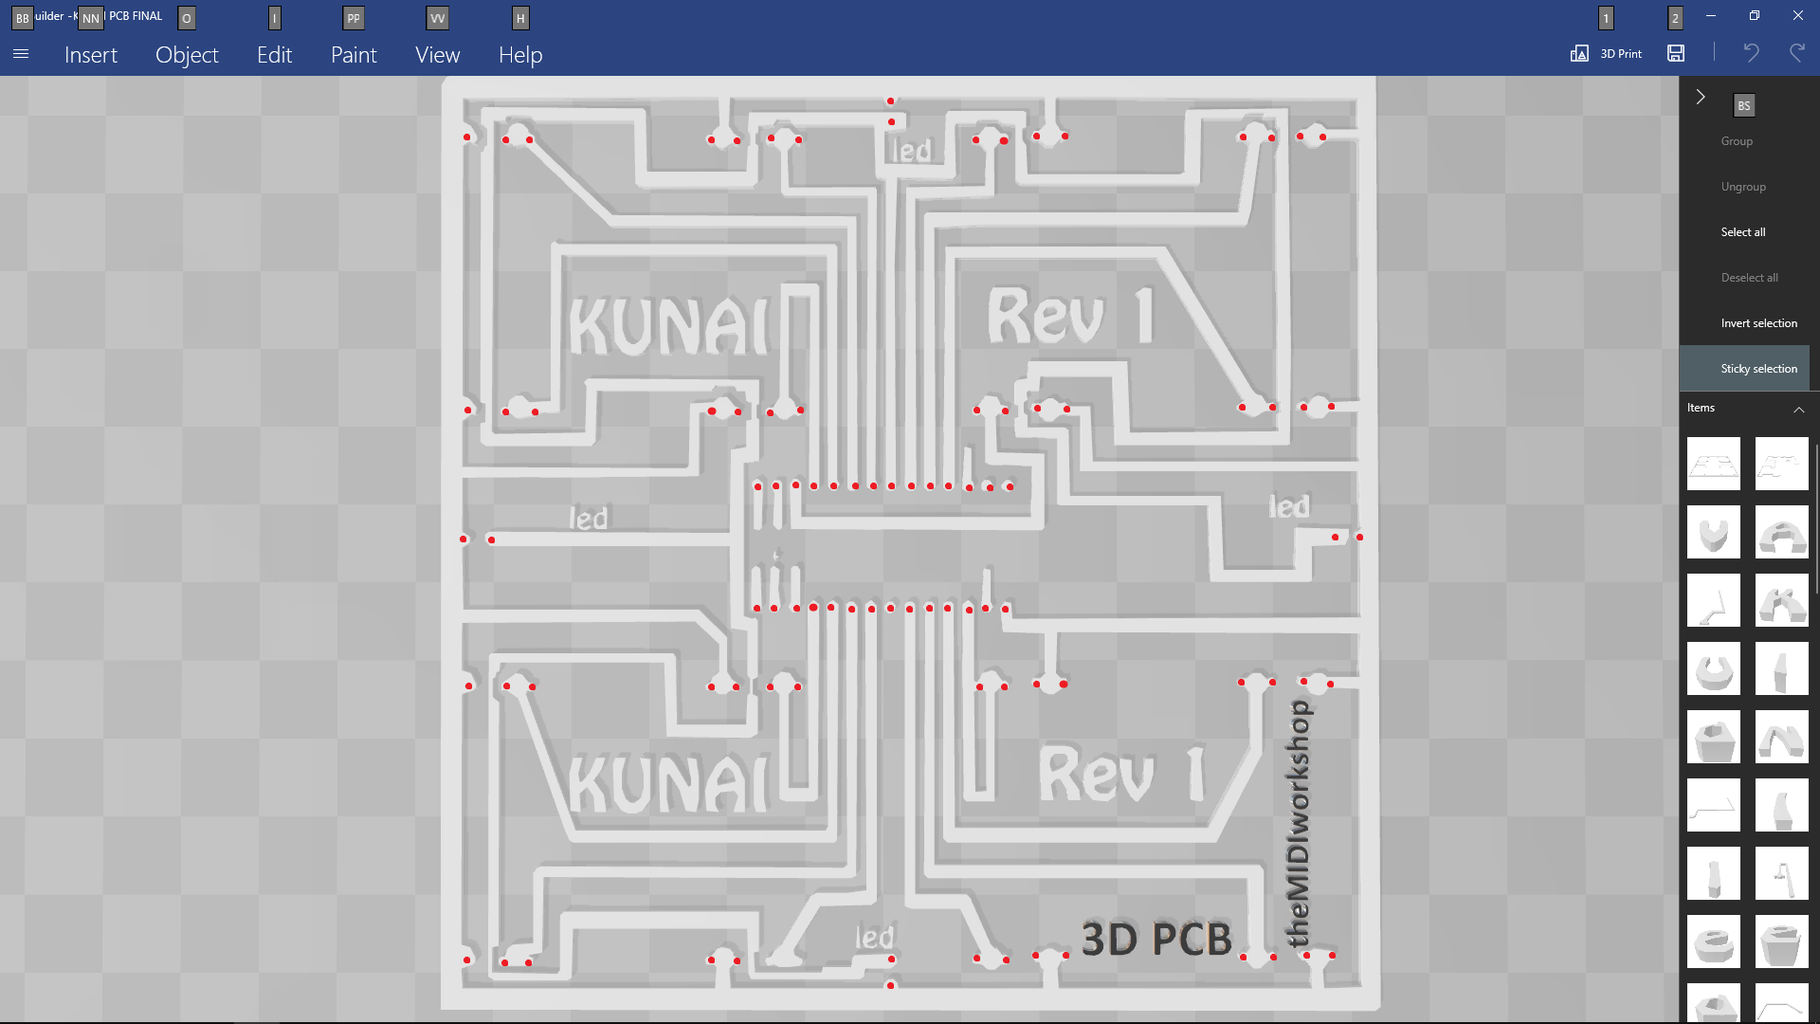 The PCB Step 3/3